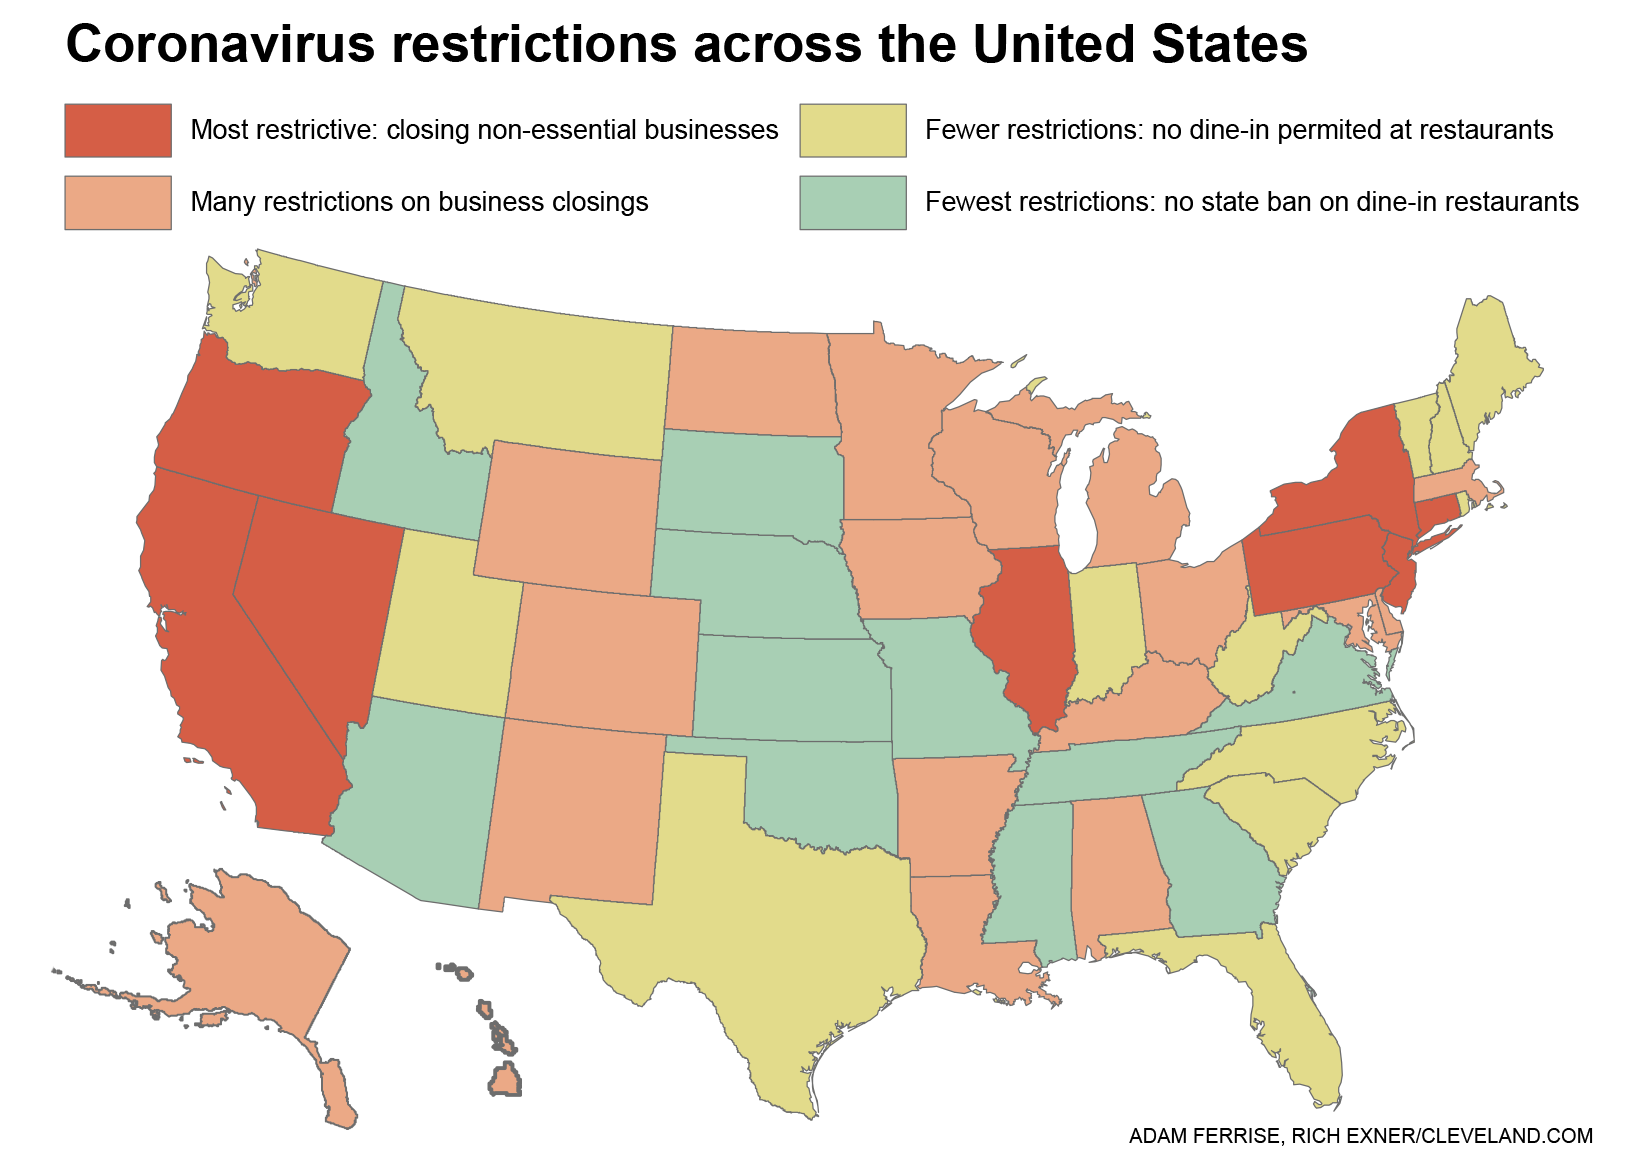 5 states with most, fewest COVID-19 restrictions